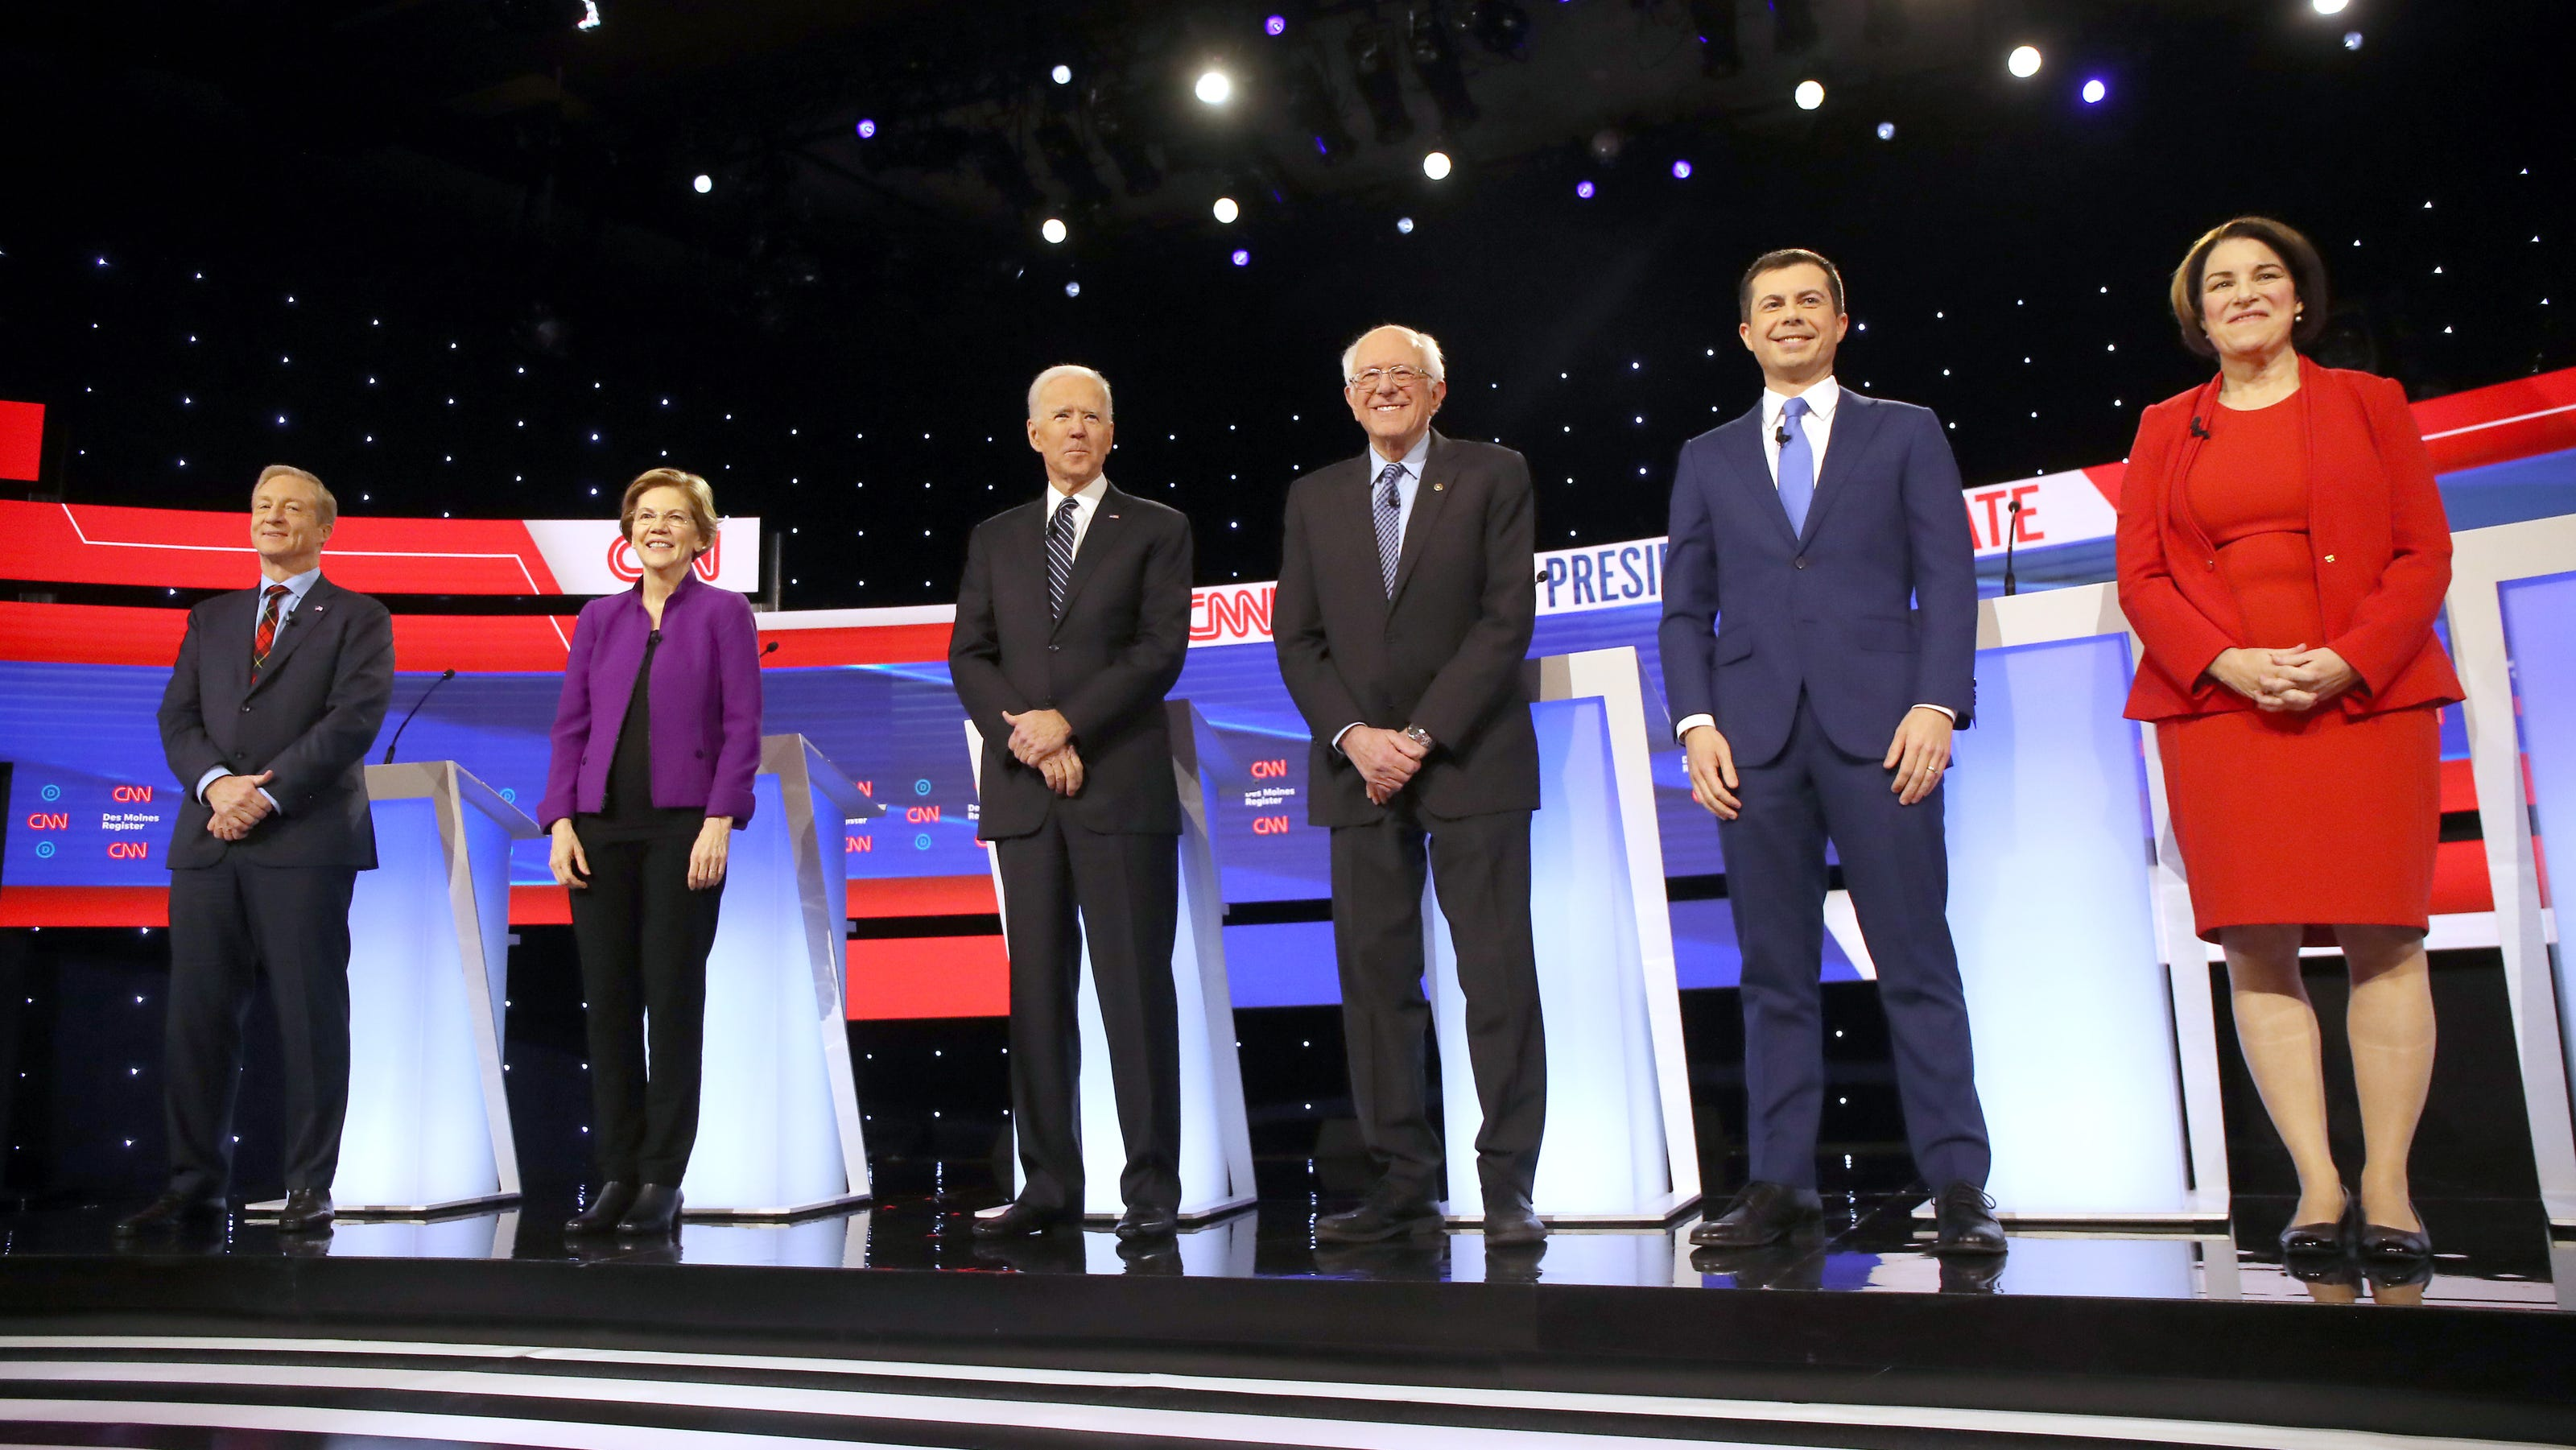 2020 Election Top Moments From The January Democratic Debate